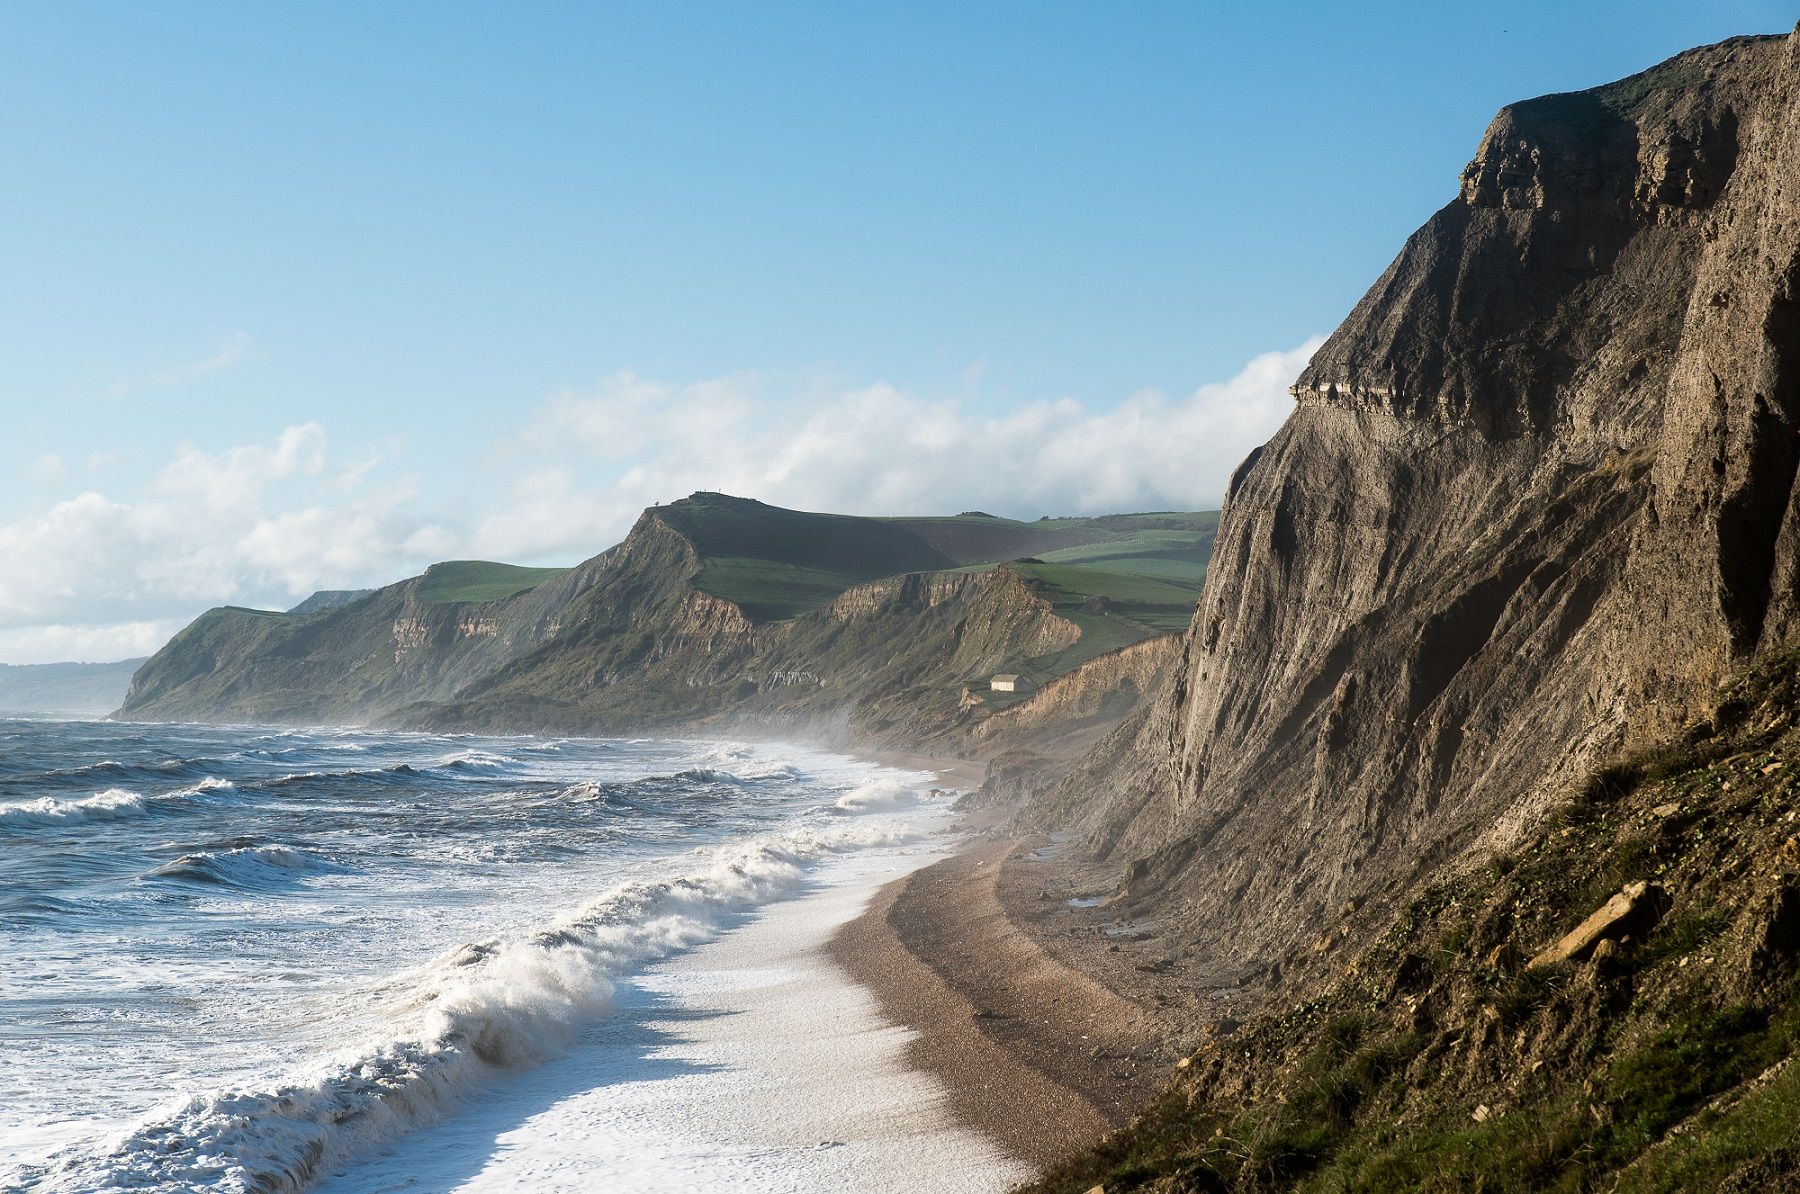 Eype beach from West Bay